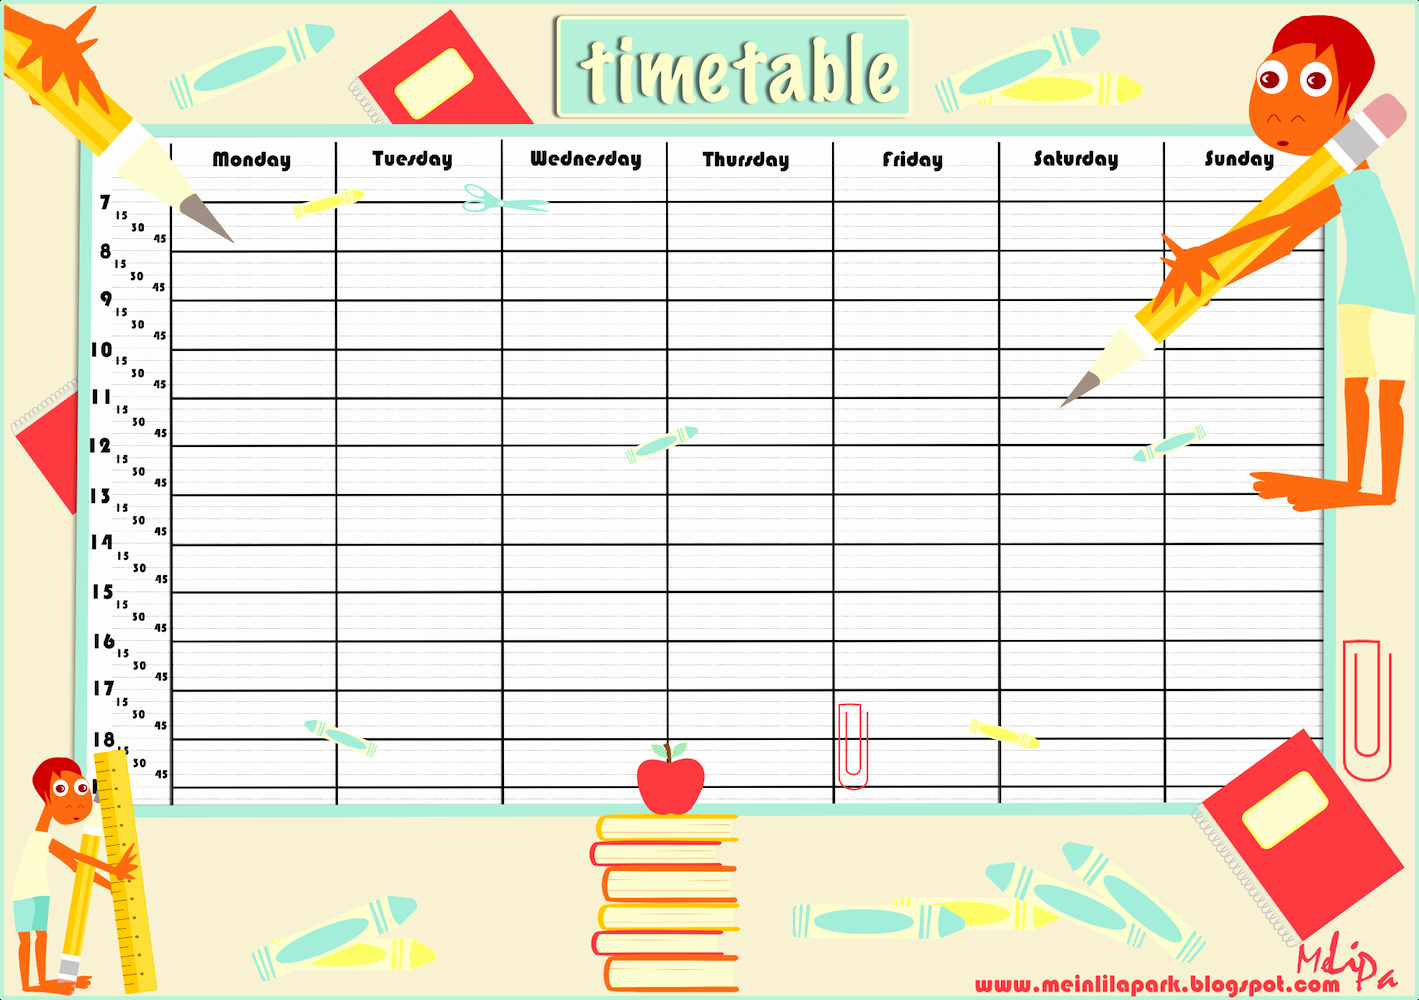 Cute Class Schedule Template Fresh Free Printable School Timetable and School Scrabpooking